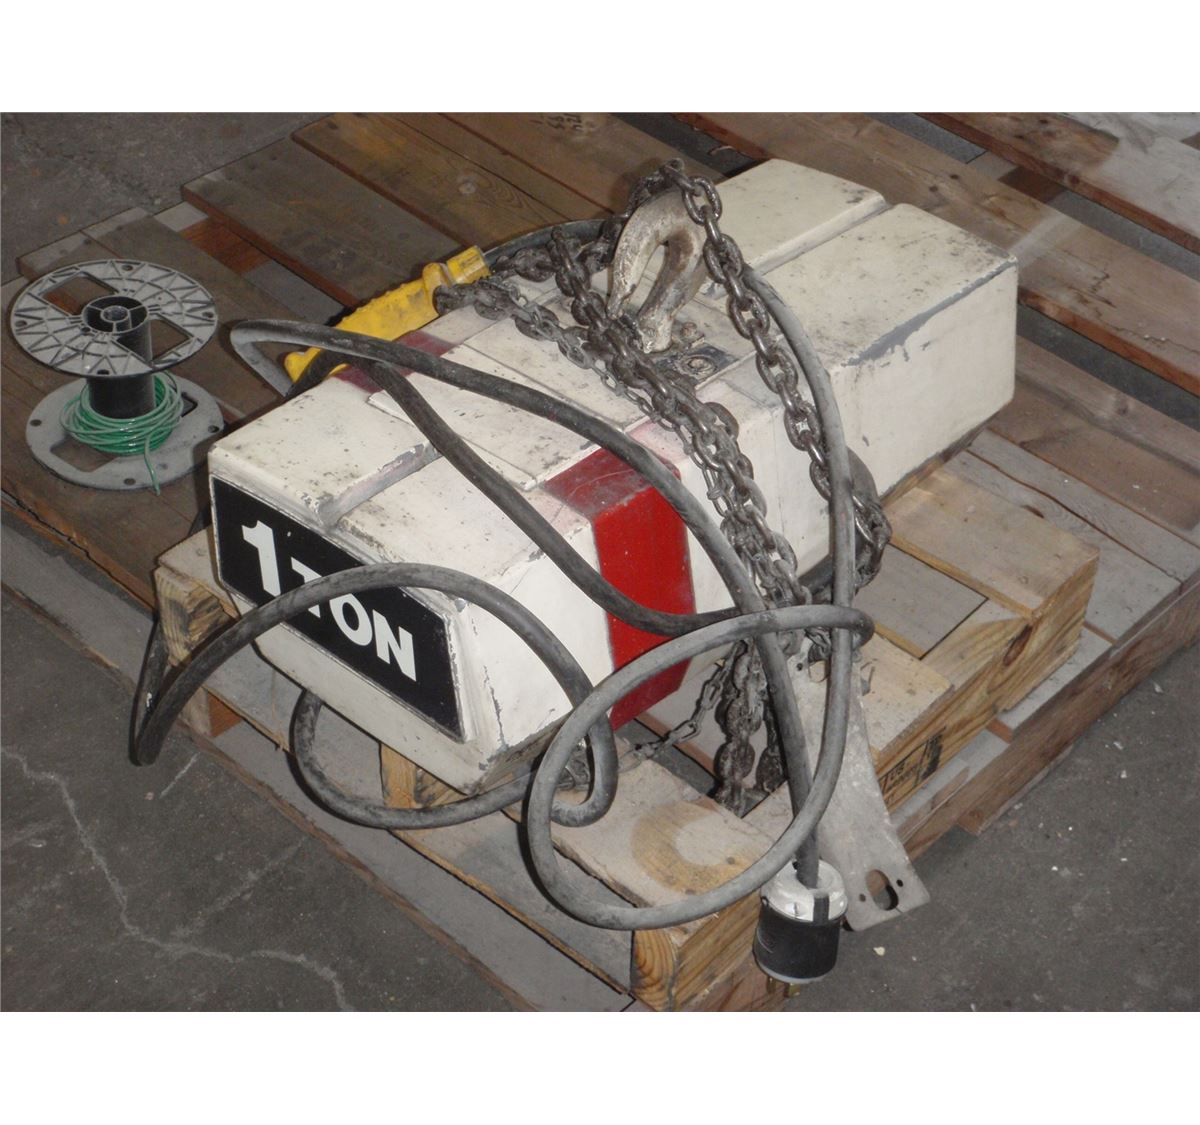 hight resolution of image 1 1 ton coffing hoist